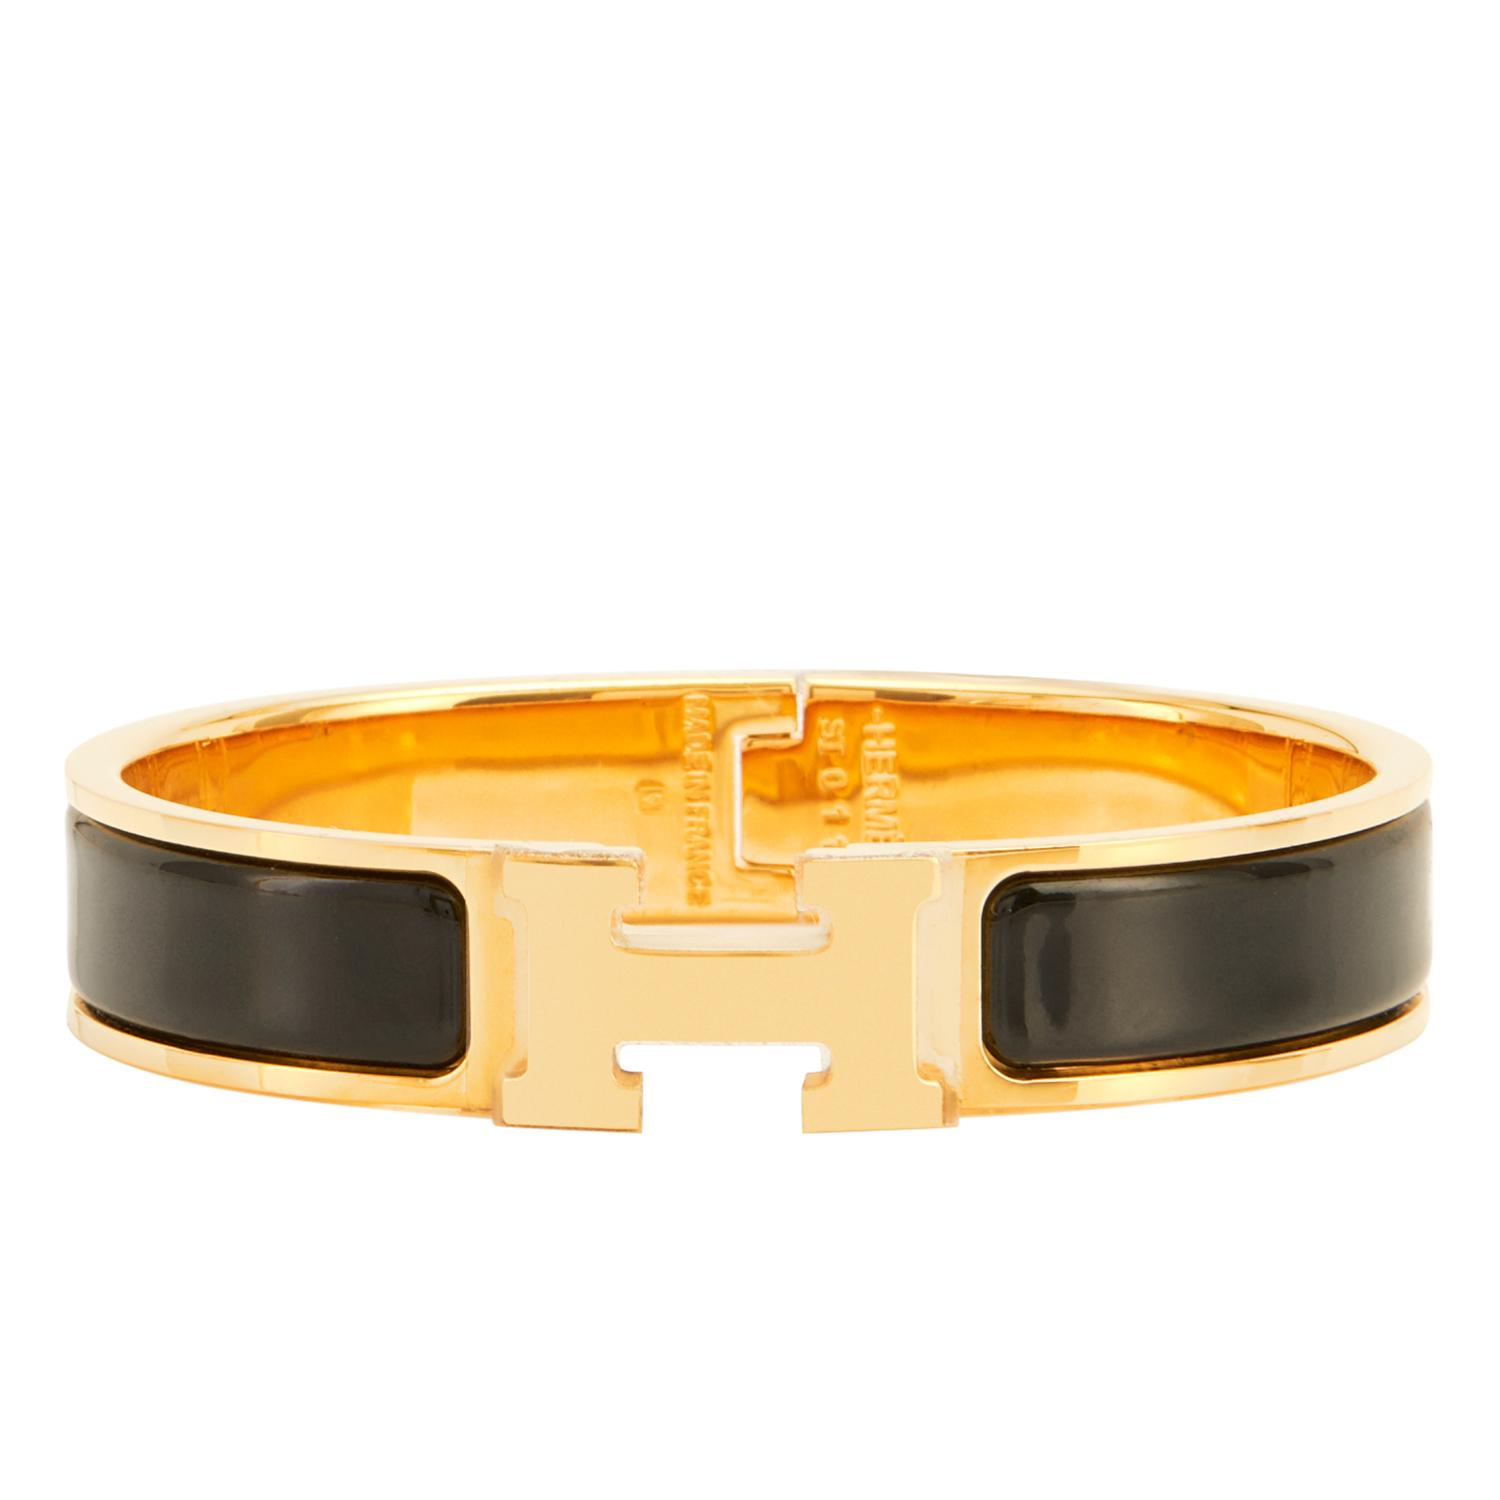 17aace28569 ... discount code for hermès black clic h bracelet tradesy 59fea 354aa